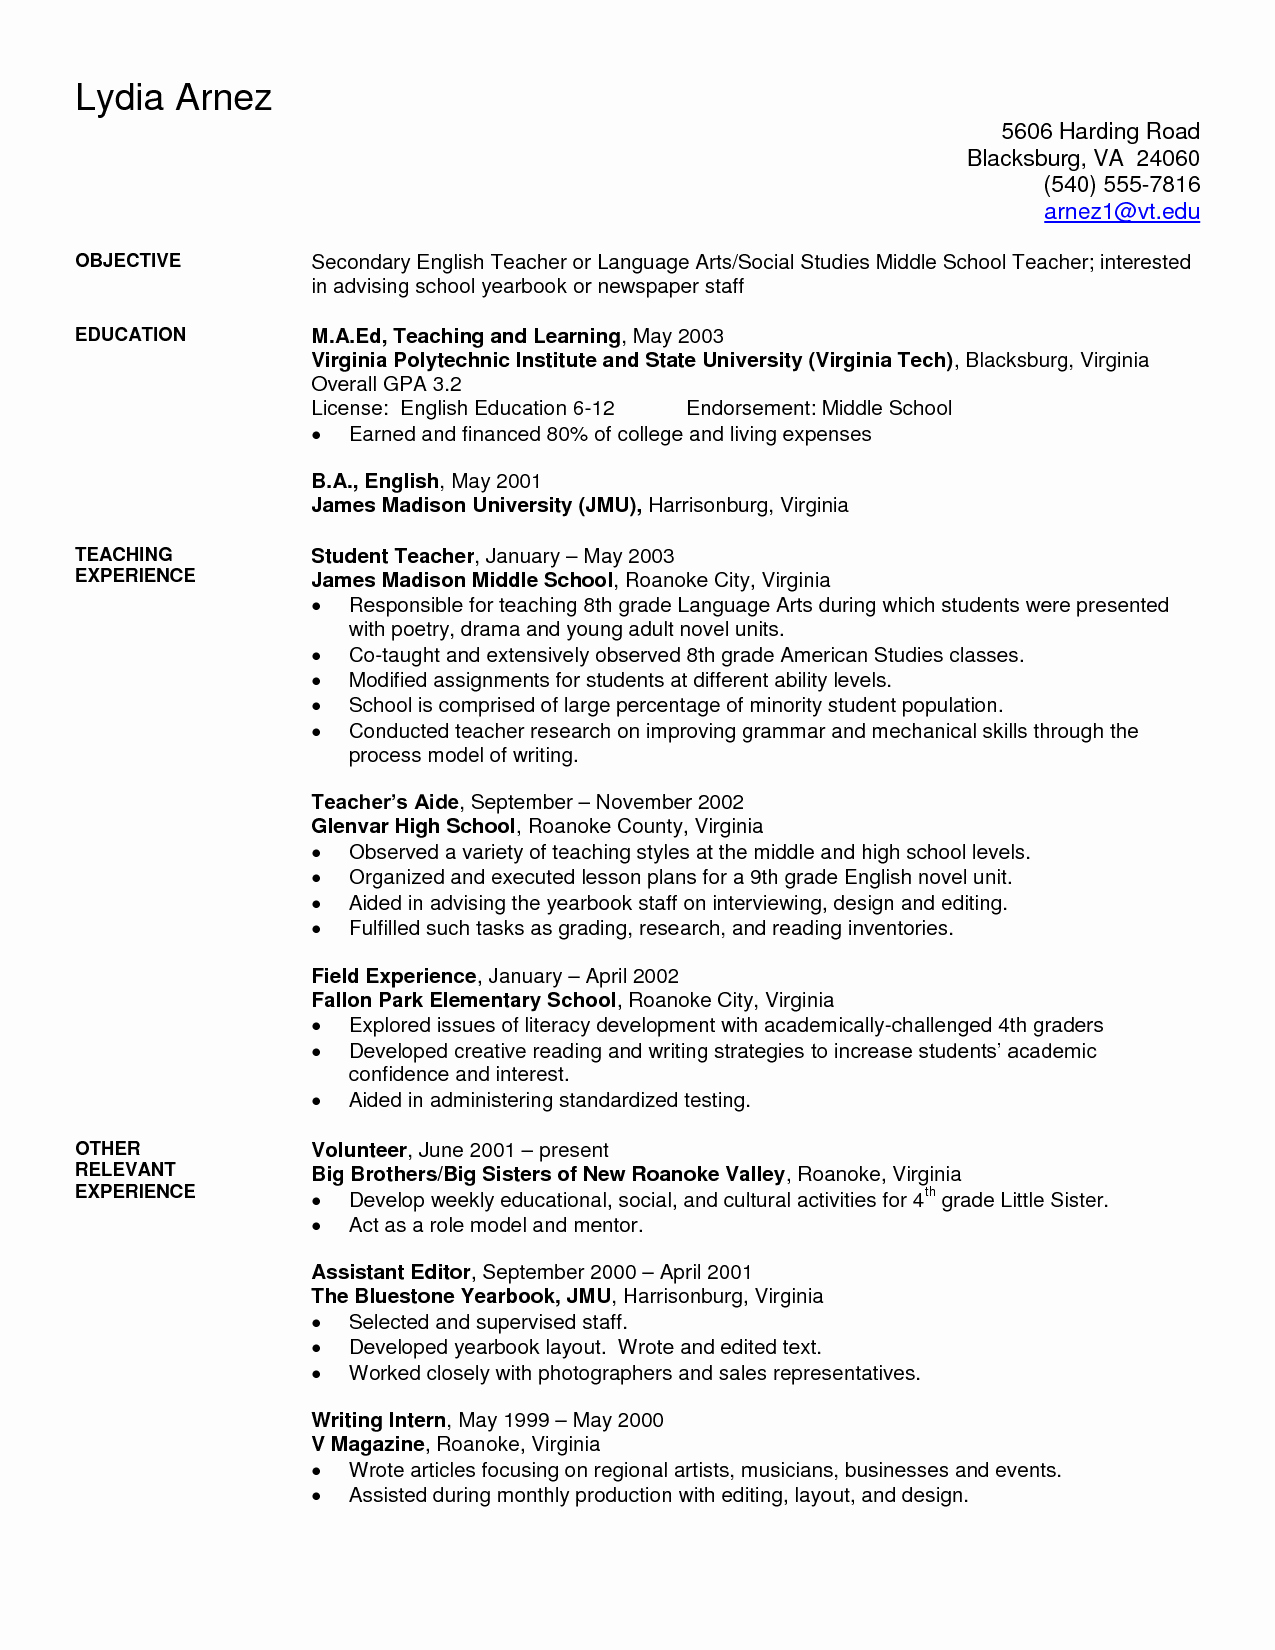 Resume Templates for Teachers Unique Art Teacher Resume Examples